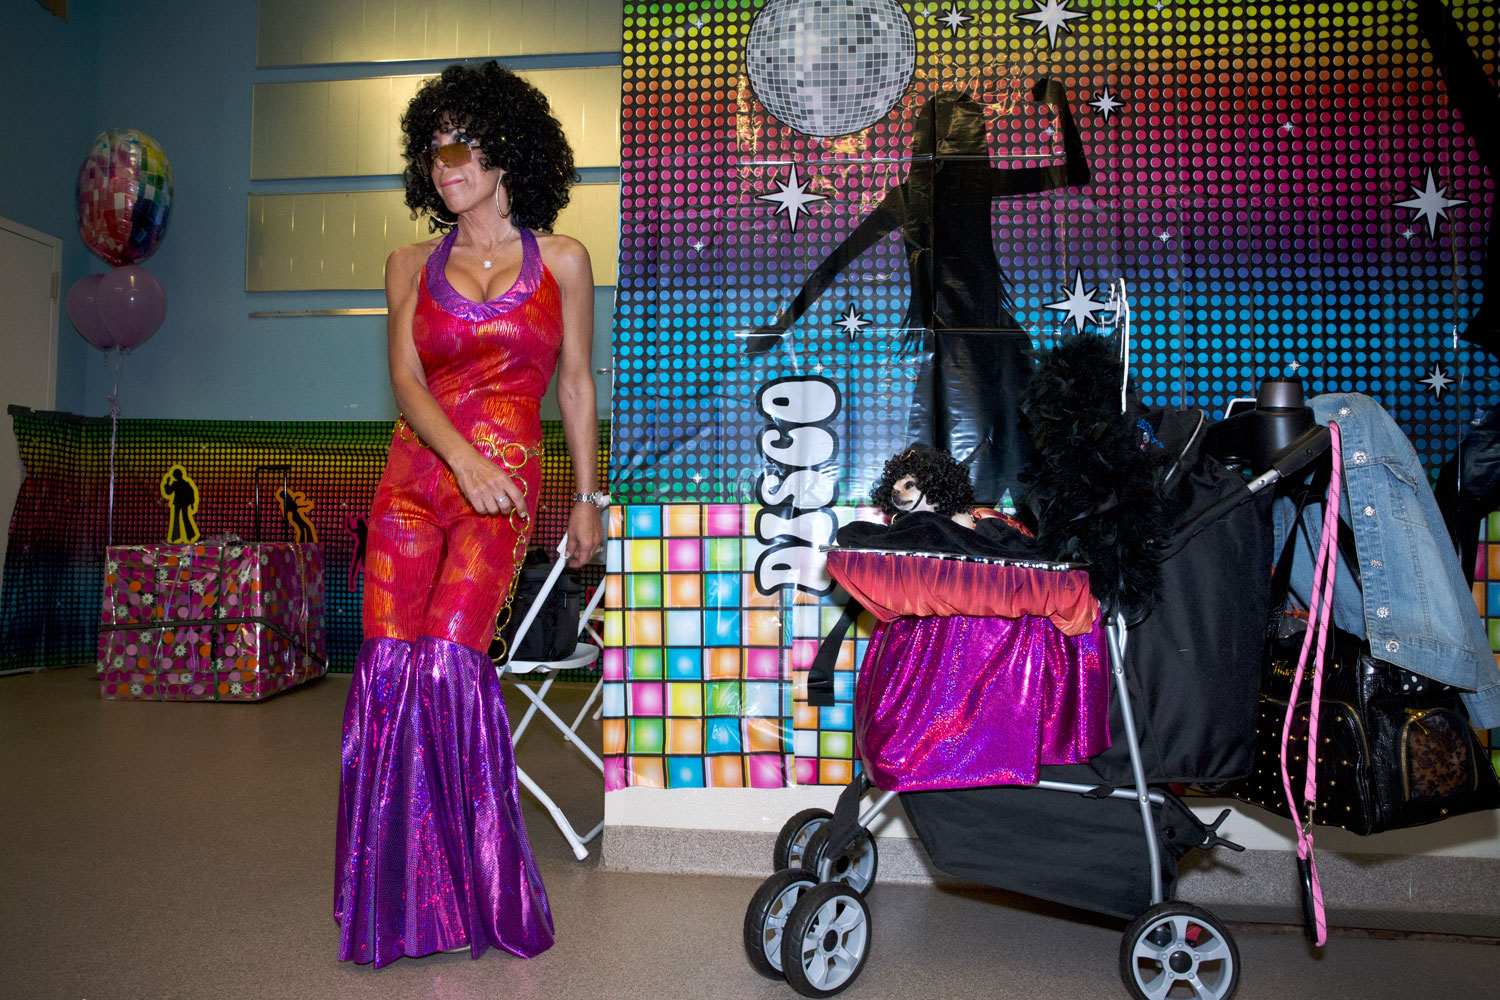 Teresa Costanza dancing at ZZ and Pebbles' disco themed birthday party while her Chihuahua, Yum Yum, watches.